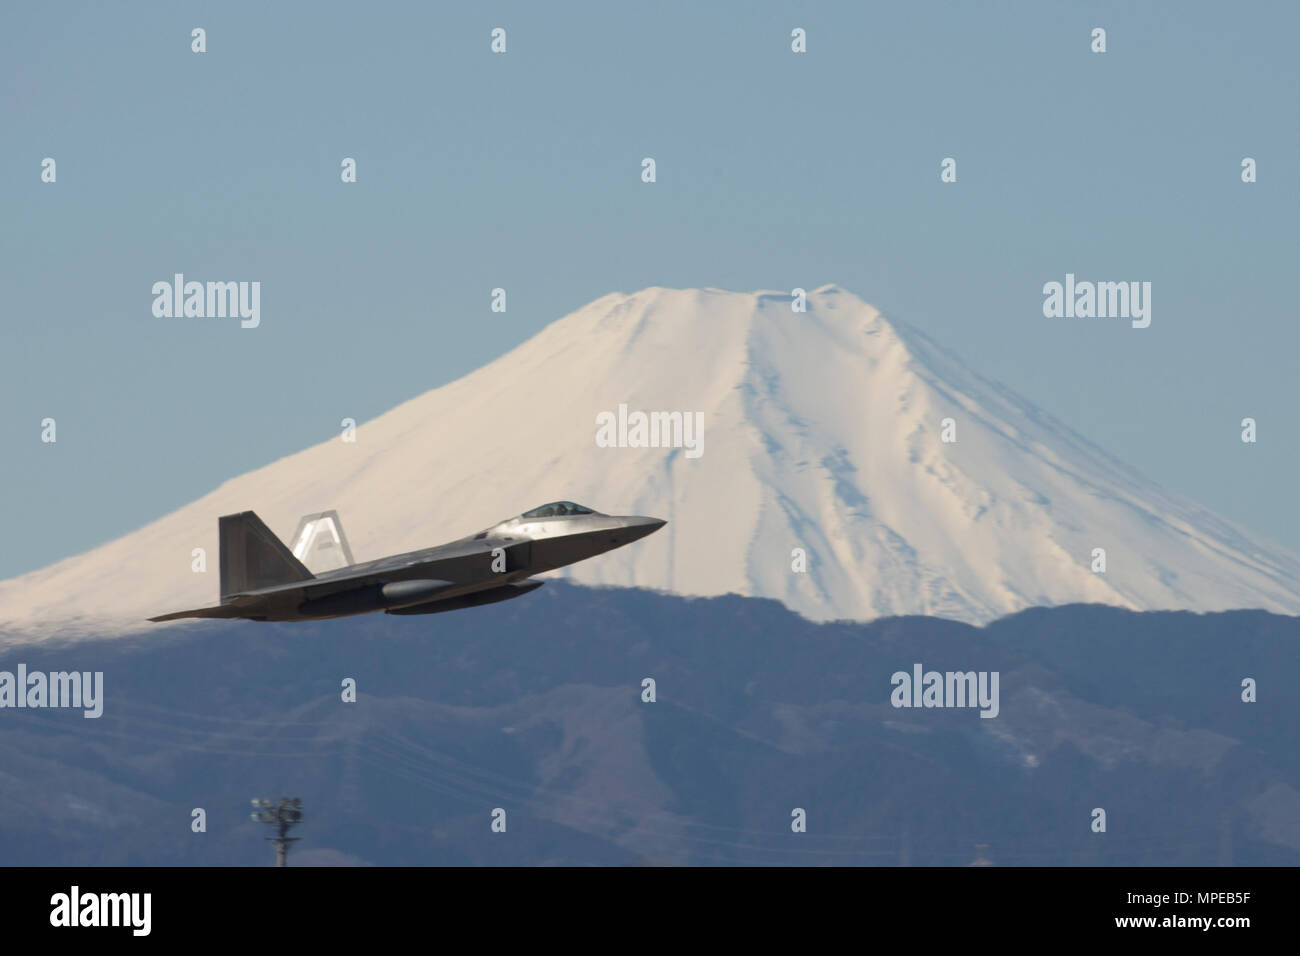 A U.S. Air Force F-22 Raptor from the 90th Fighter Squadron at Joint Base Elmendorf-Richardson, takes off at Yokota Air Base, Japan, Feb. 13, 2017. The F-22 Raptors stopped at Yokota AB before traveling on to Royal Australian Air Force Base, Tindal. As the Air Force's Western Pacific airlift hub, Yokota supports transient aircraft as they conduct mission throughout the Indo-Asia Pacific Region. (U.S. Air Force photo by Yasuo Osakabe/Released) - Stock Image